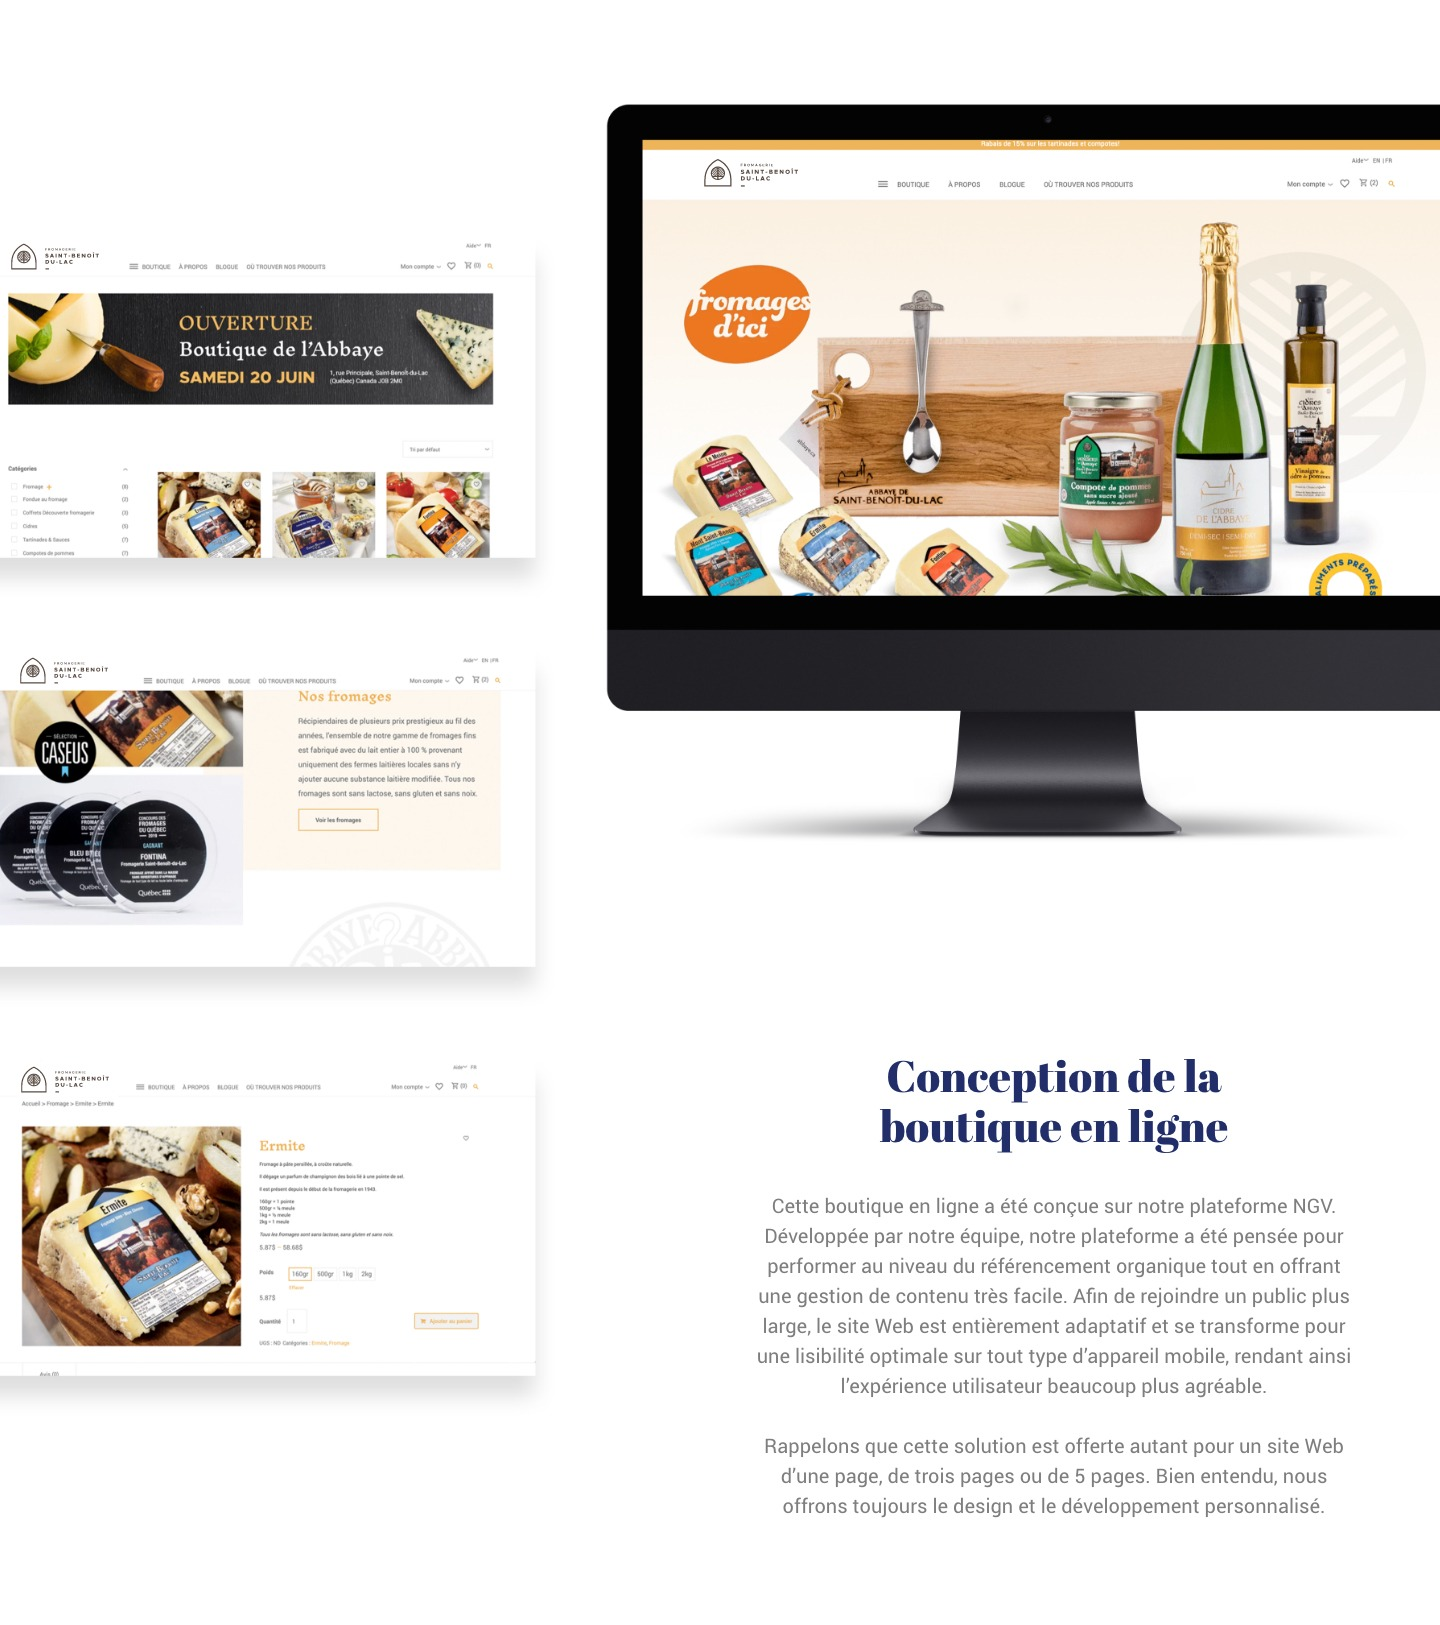 Conception de la boutique en ligne